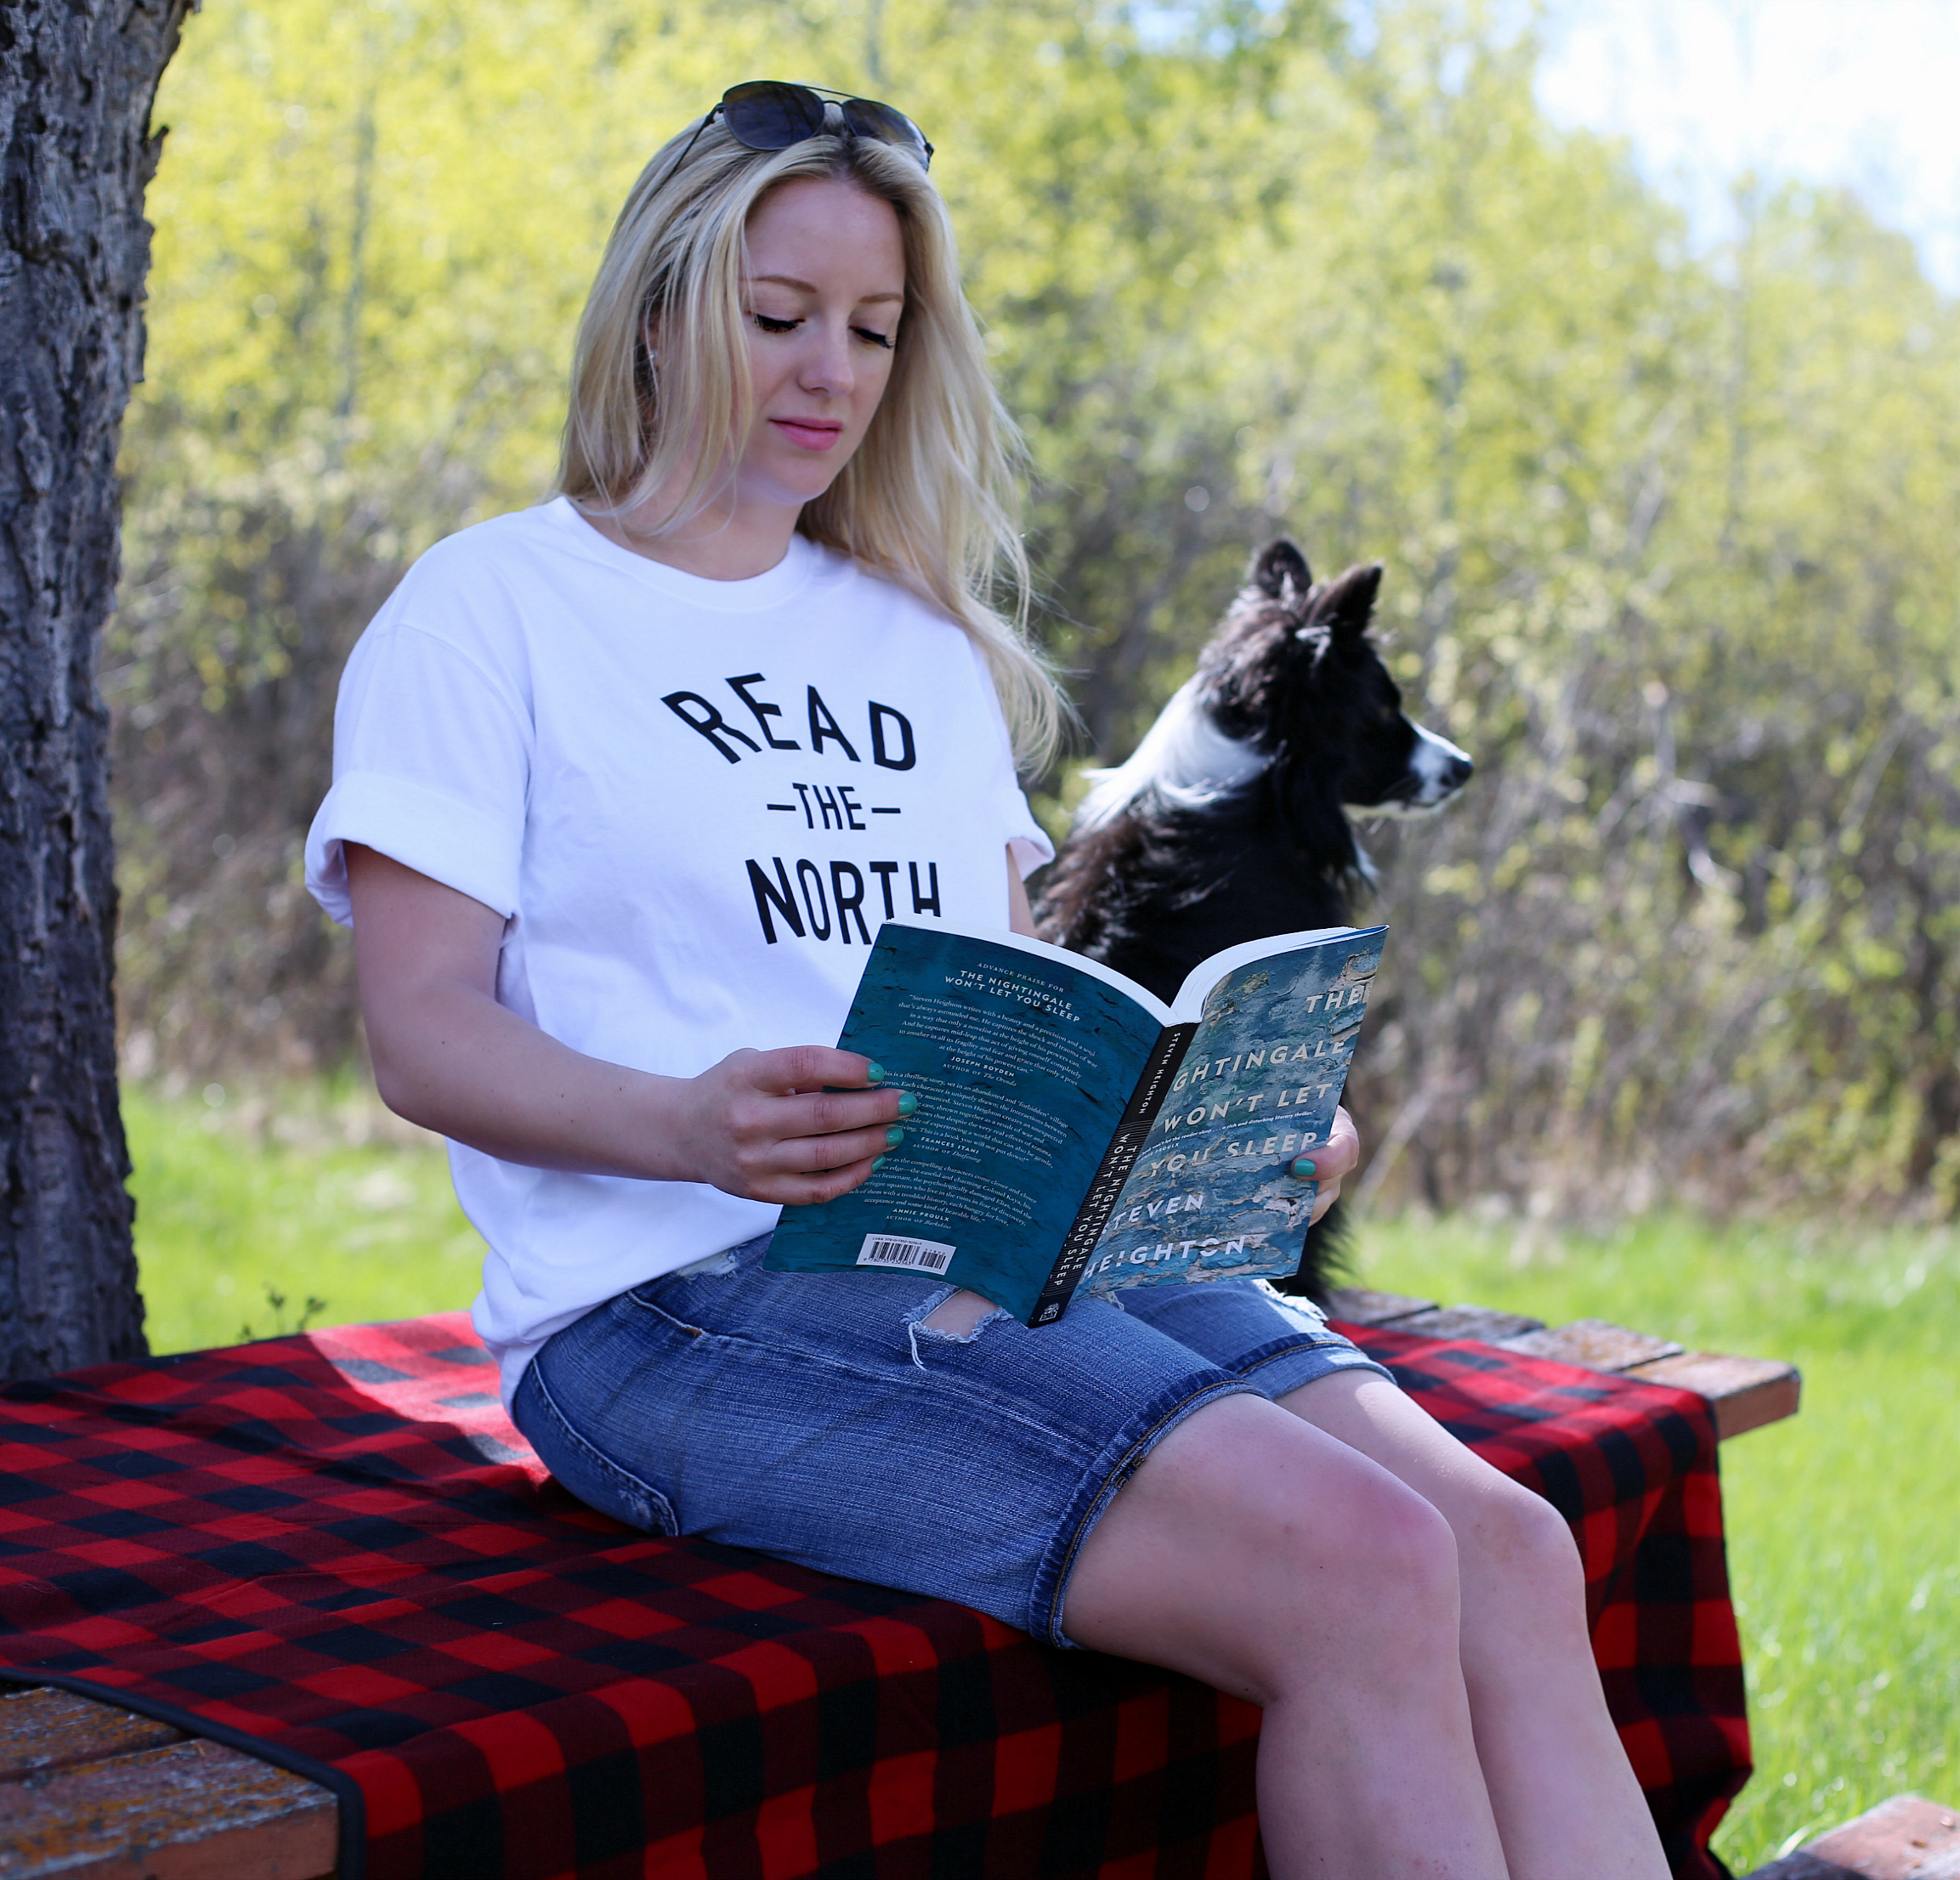 Read the North